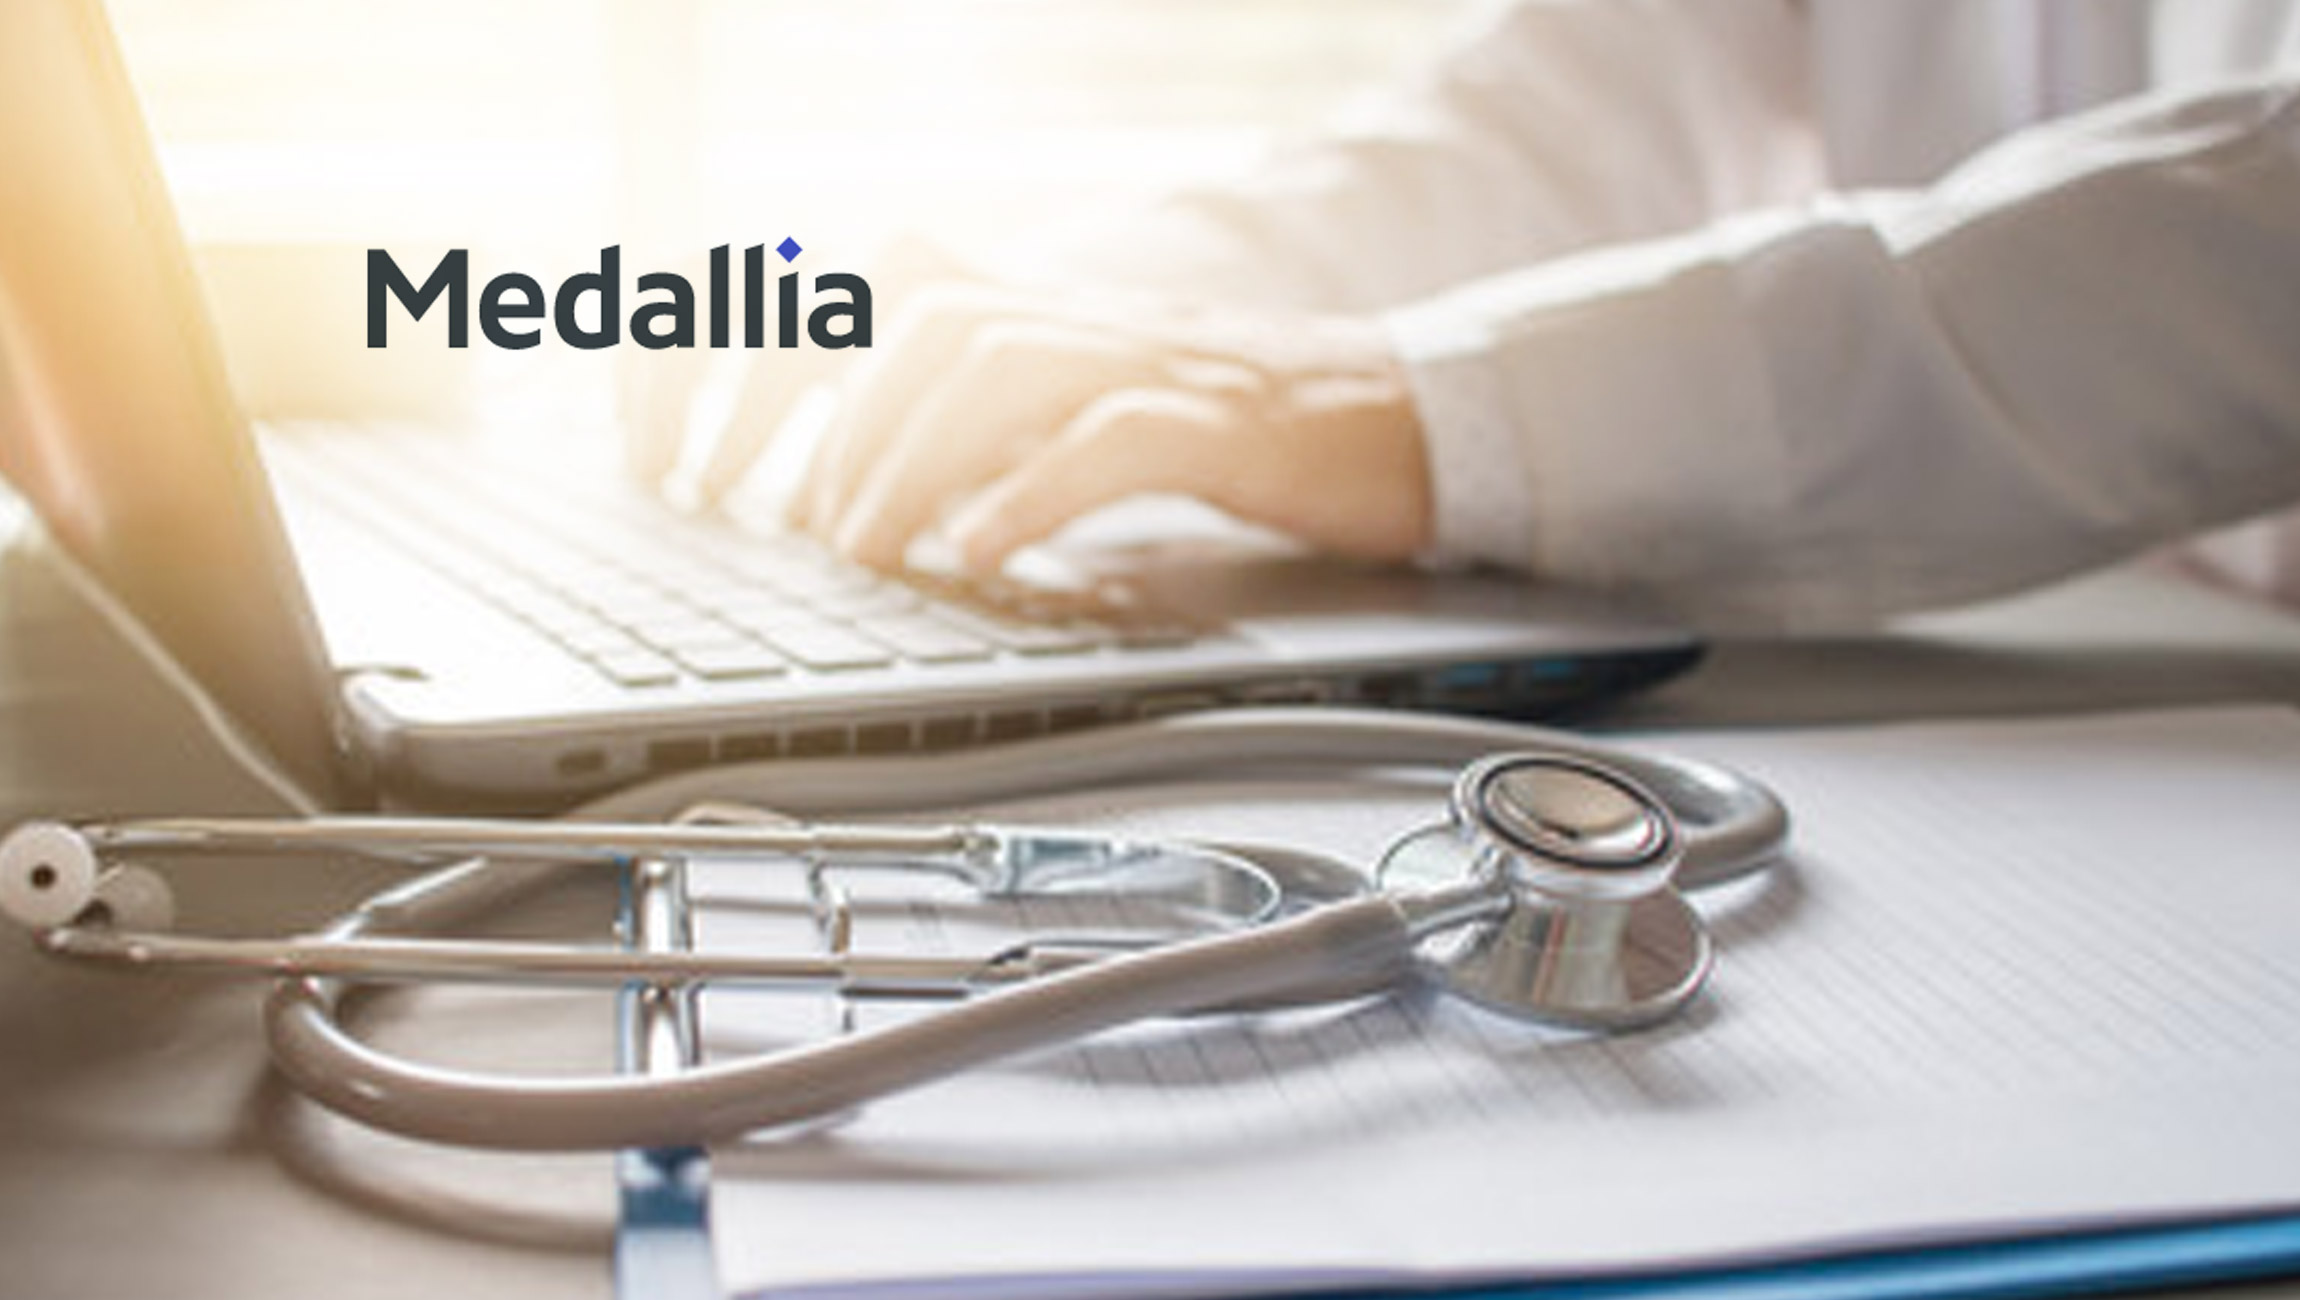 Medallia Launches Additional Prepackaged Solutions for Healthcare, Field Sales Teams and Employee Experience